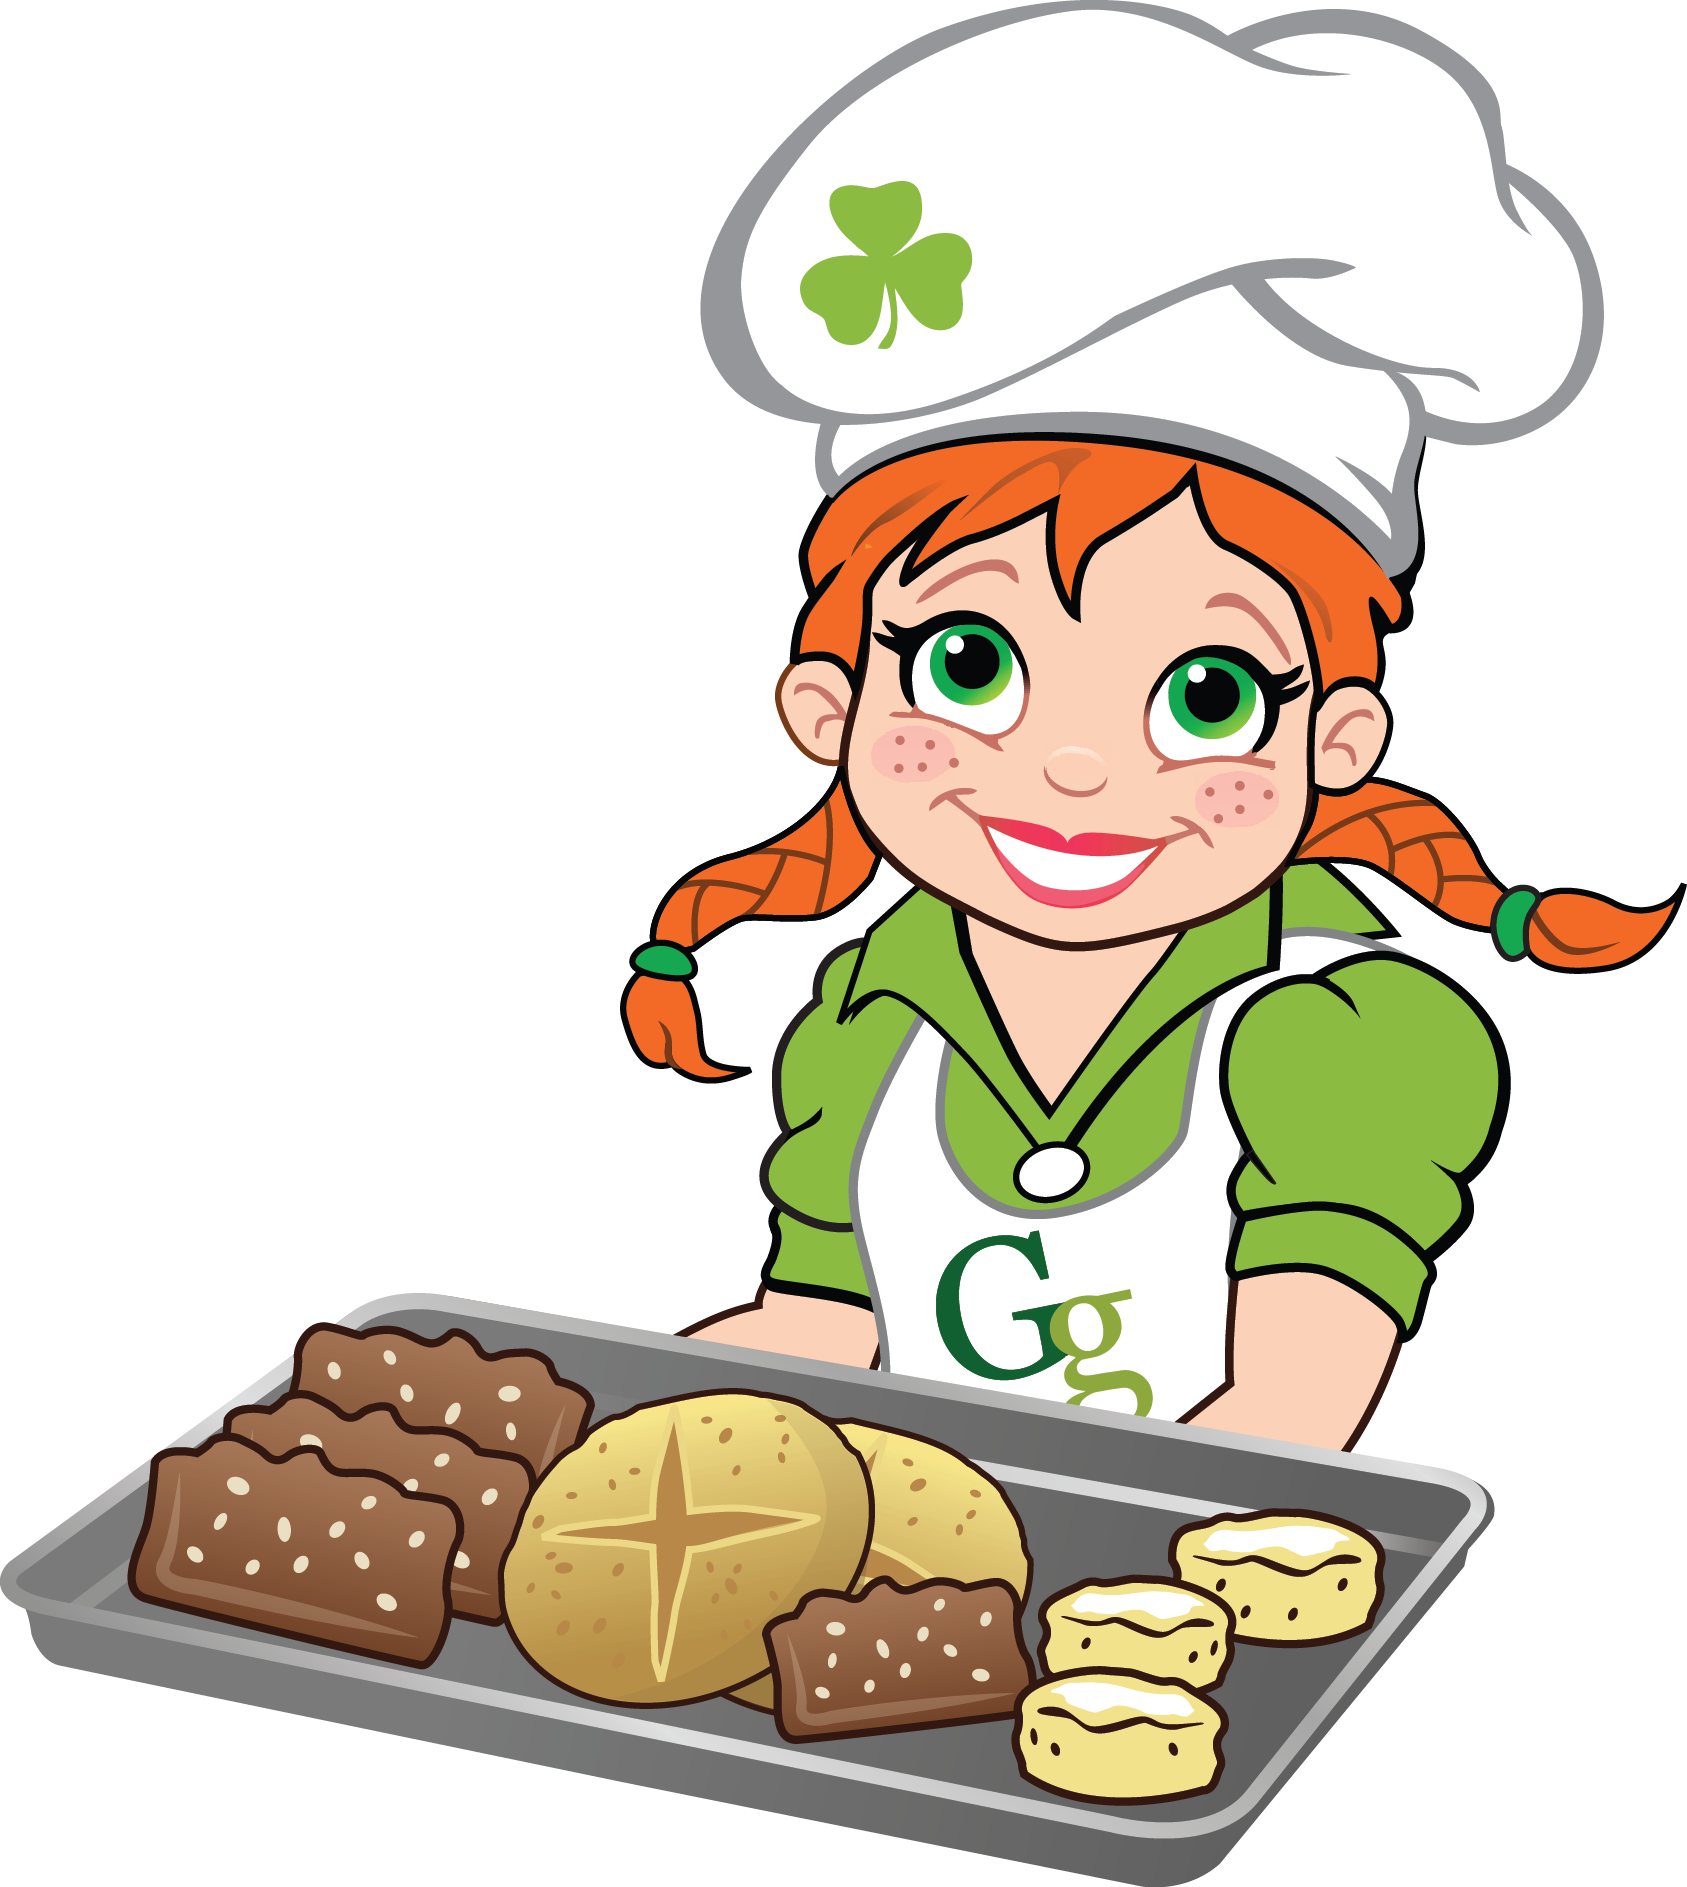 Introducing gaelic girl bread. Cooking clipart mix food